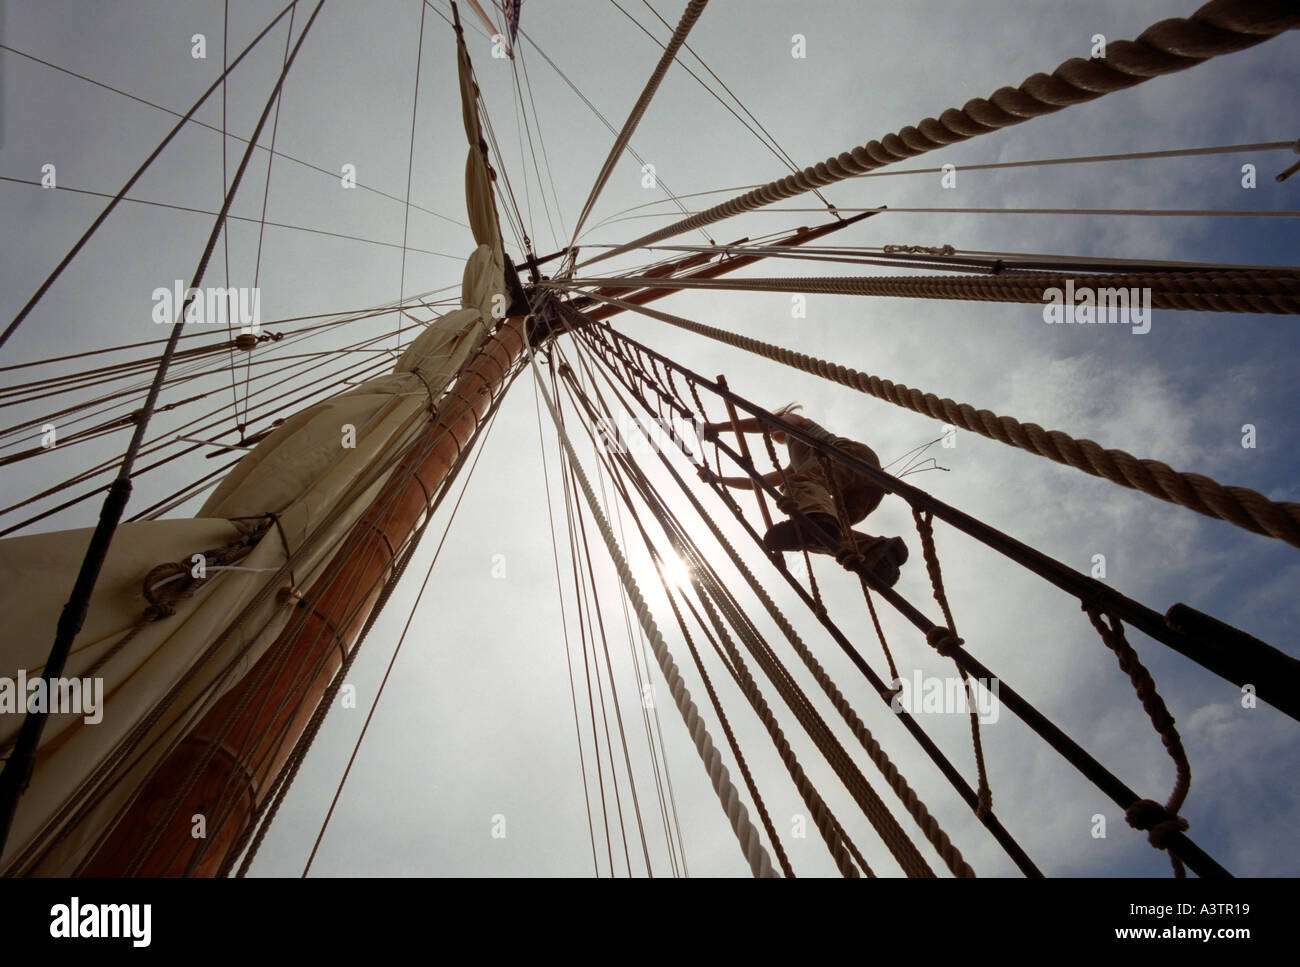 Photo of a Man climbing the mast of a tall sailing ship with sunlight - Stock Image